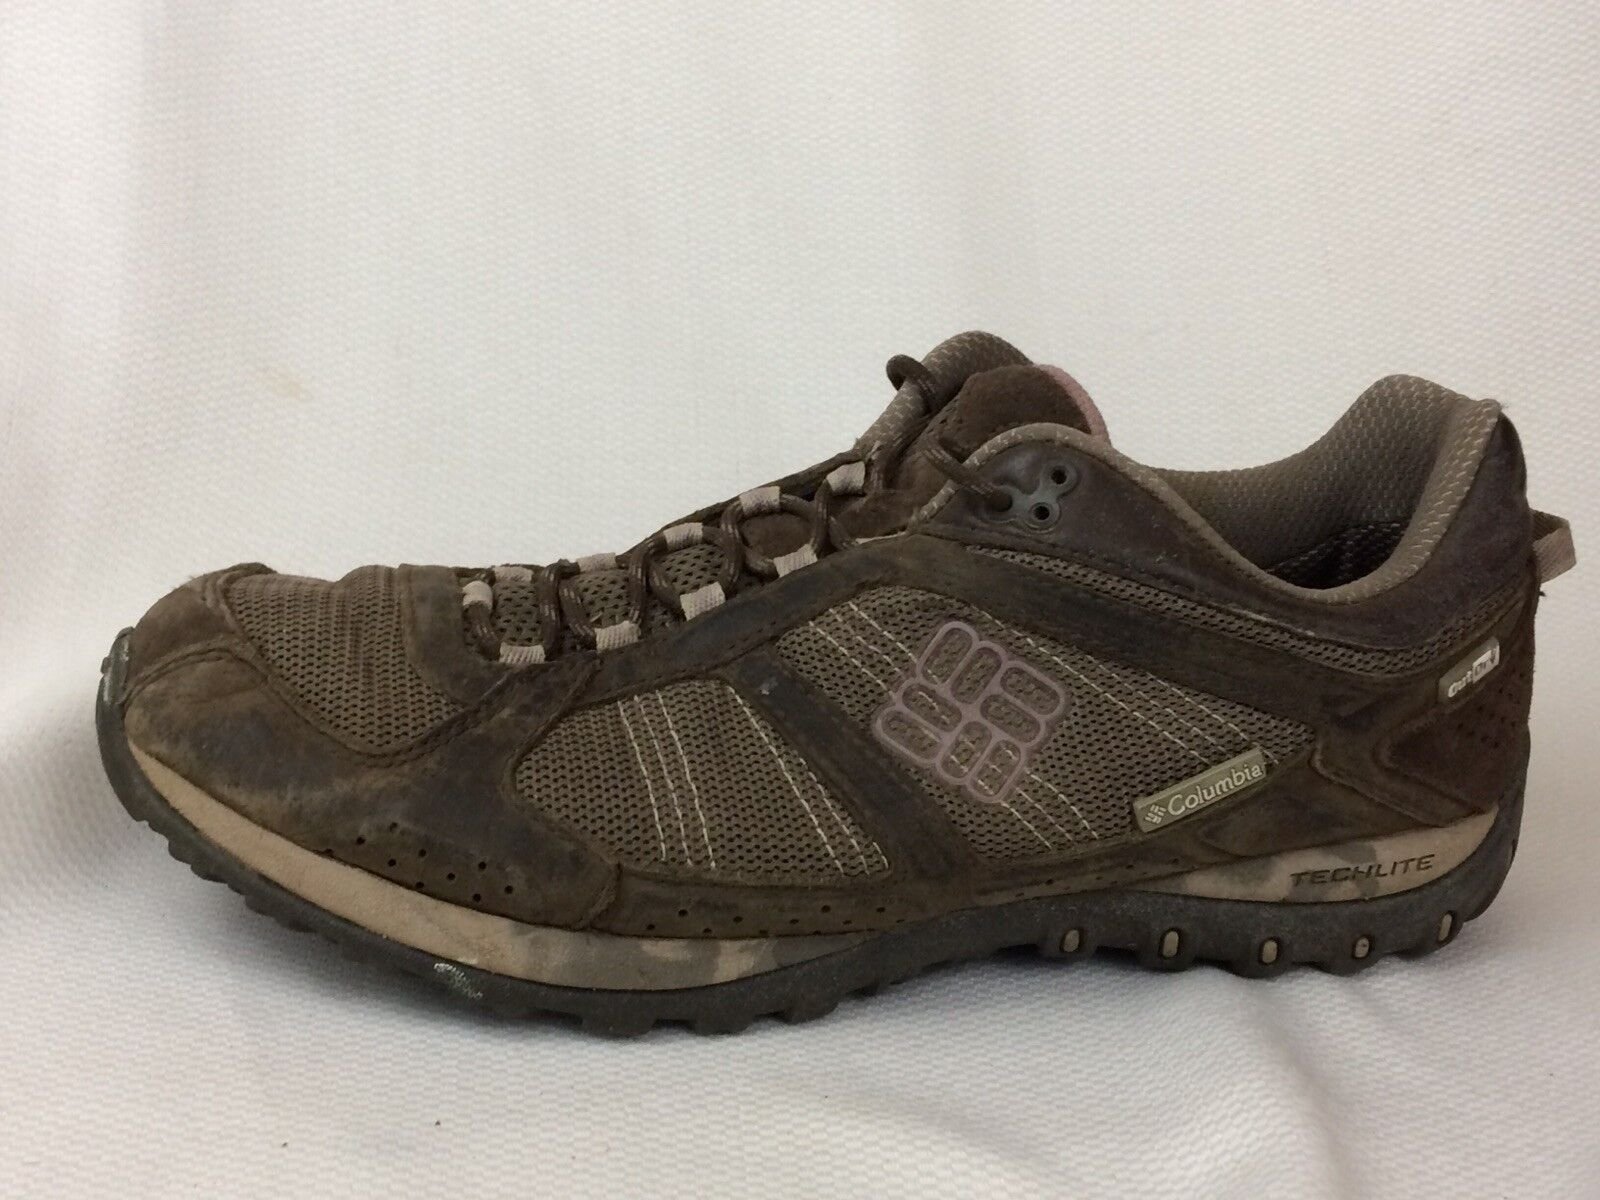 Columbia Womens 10.5 M Yama OutDry Hiking shoes Sneaker Waterproof Brown Leather